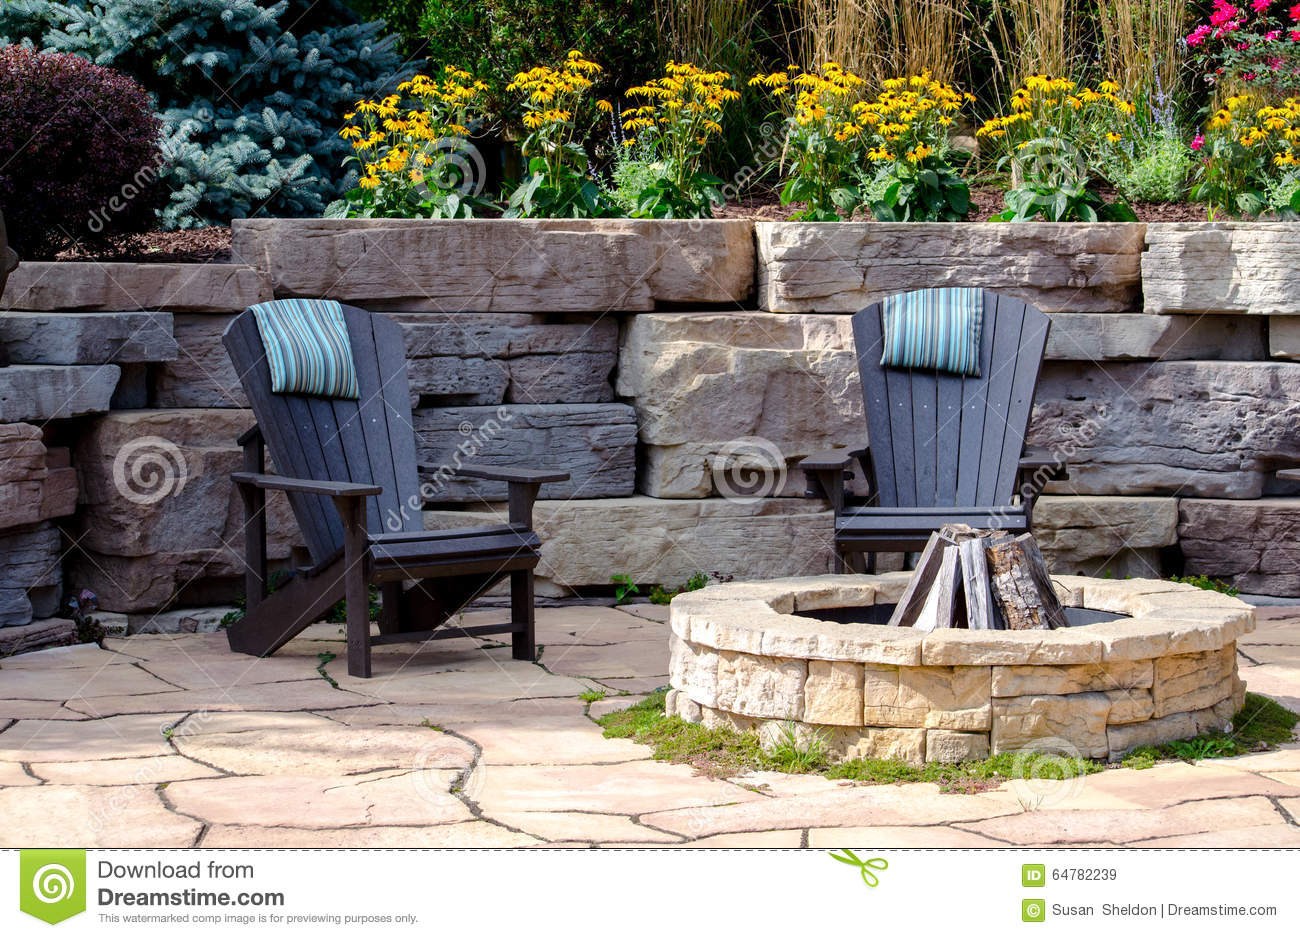 wood adirondack chairs plans 1970 kitchen table and fire-pit patio stock photo - image: 64782239